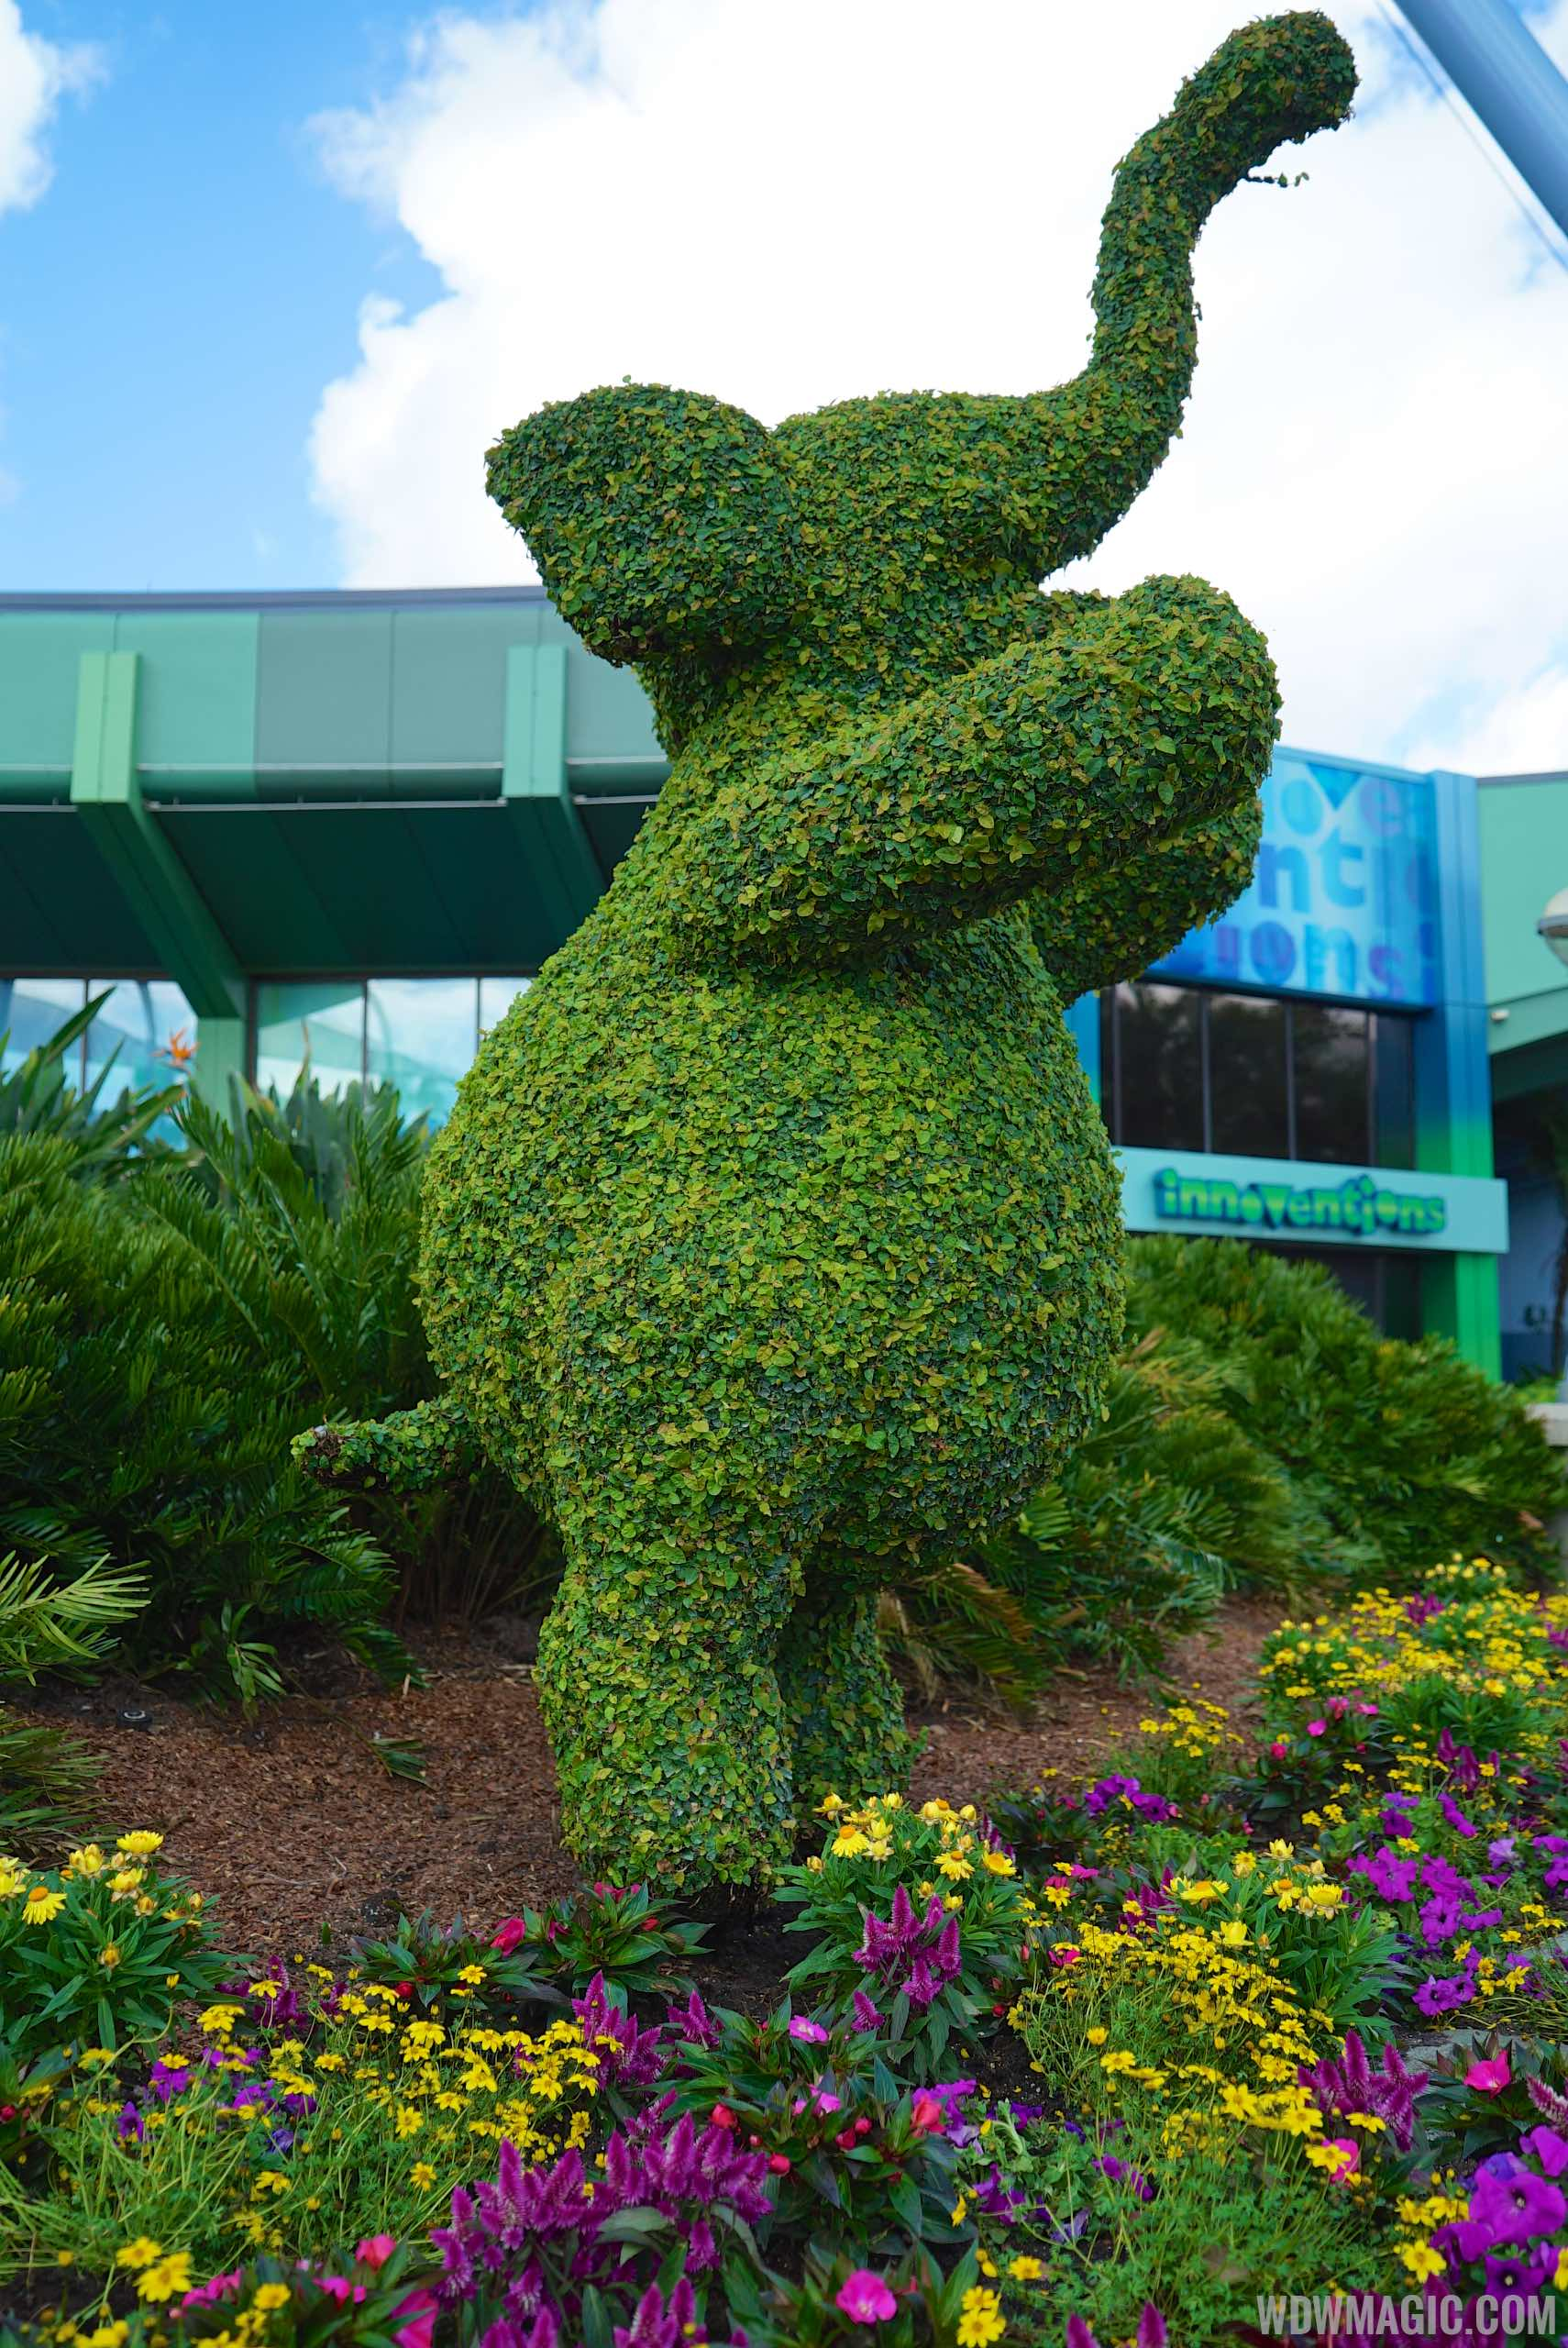 2015 Epcot International Flower And Garden Festival Opening Day Tour Photo 14 Of 74